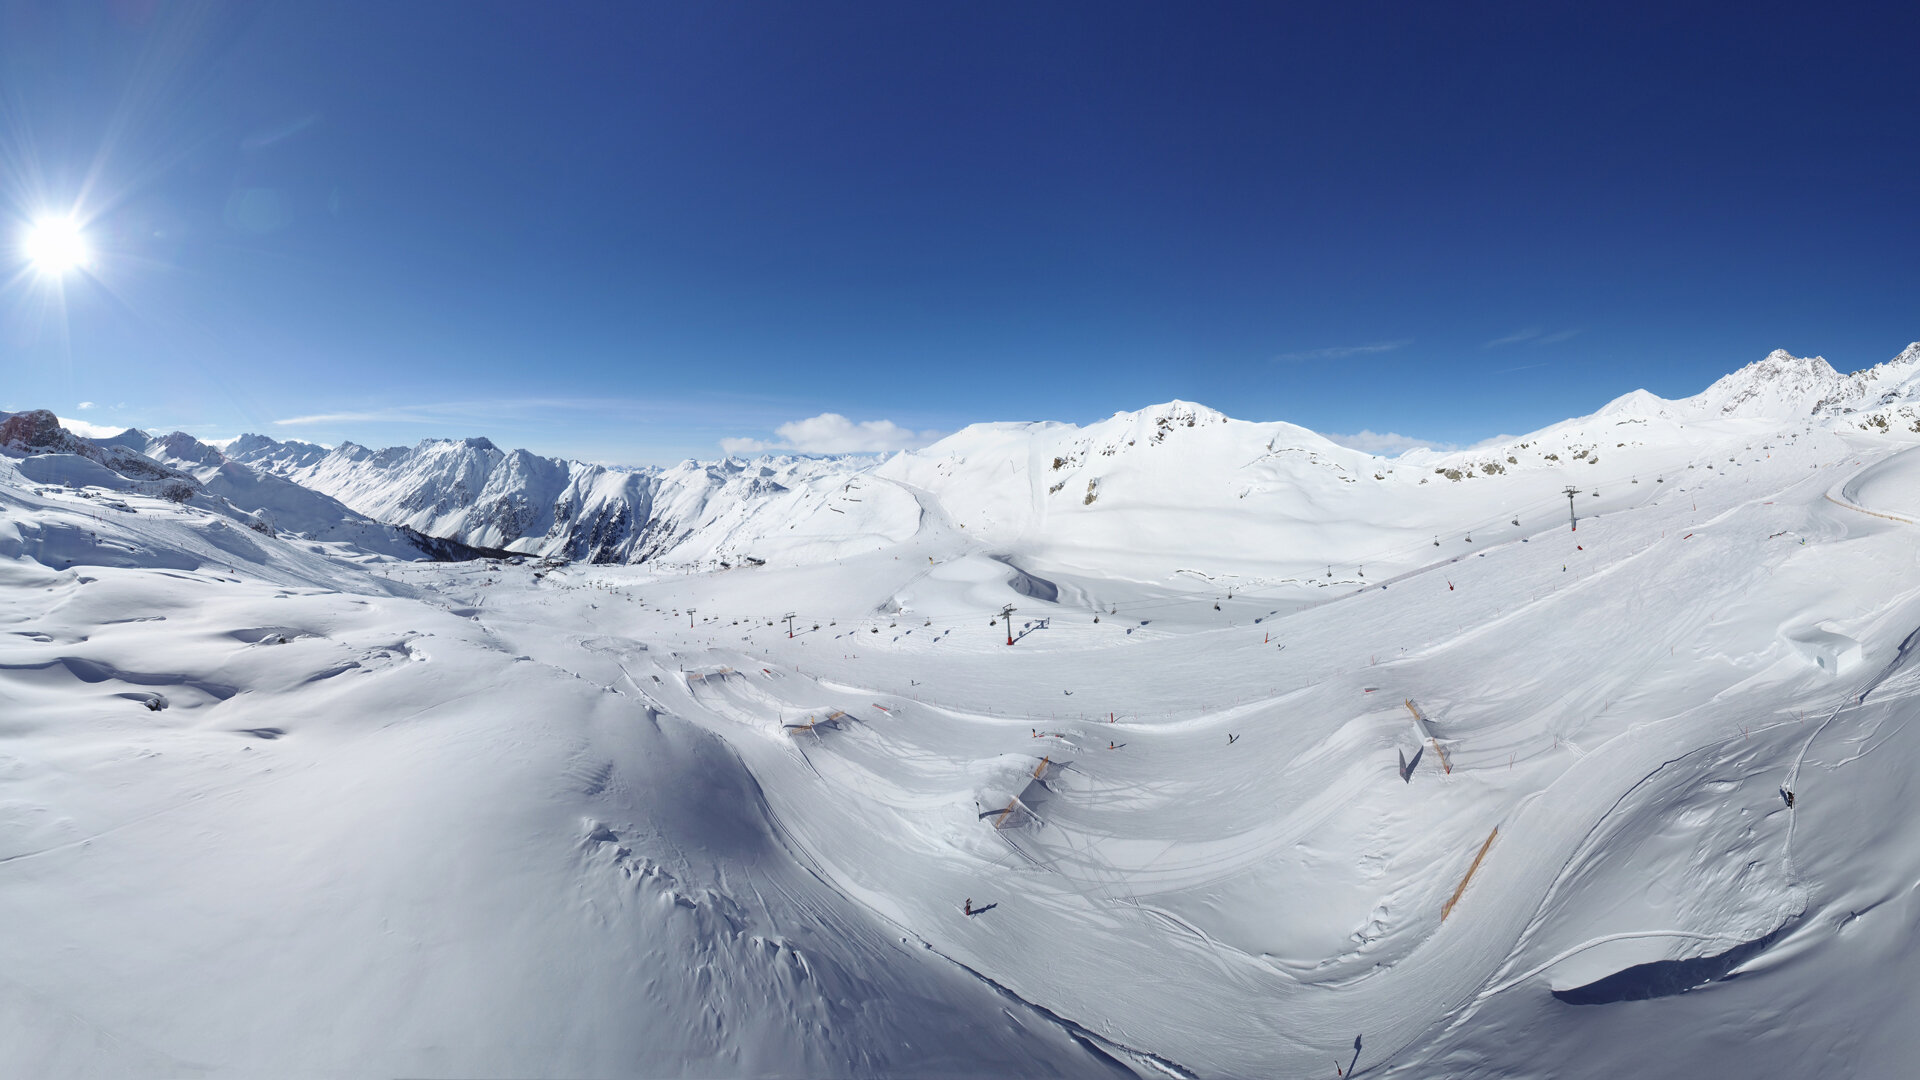 Ischgl's Snowpark Area 1 on a wonderful winter day in Ischgl